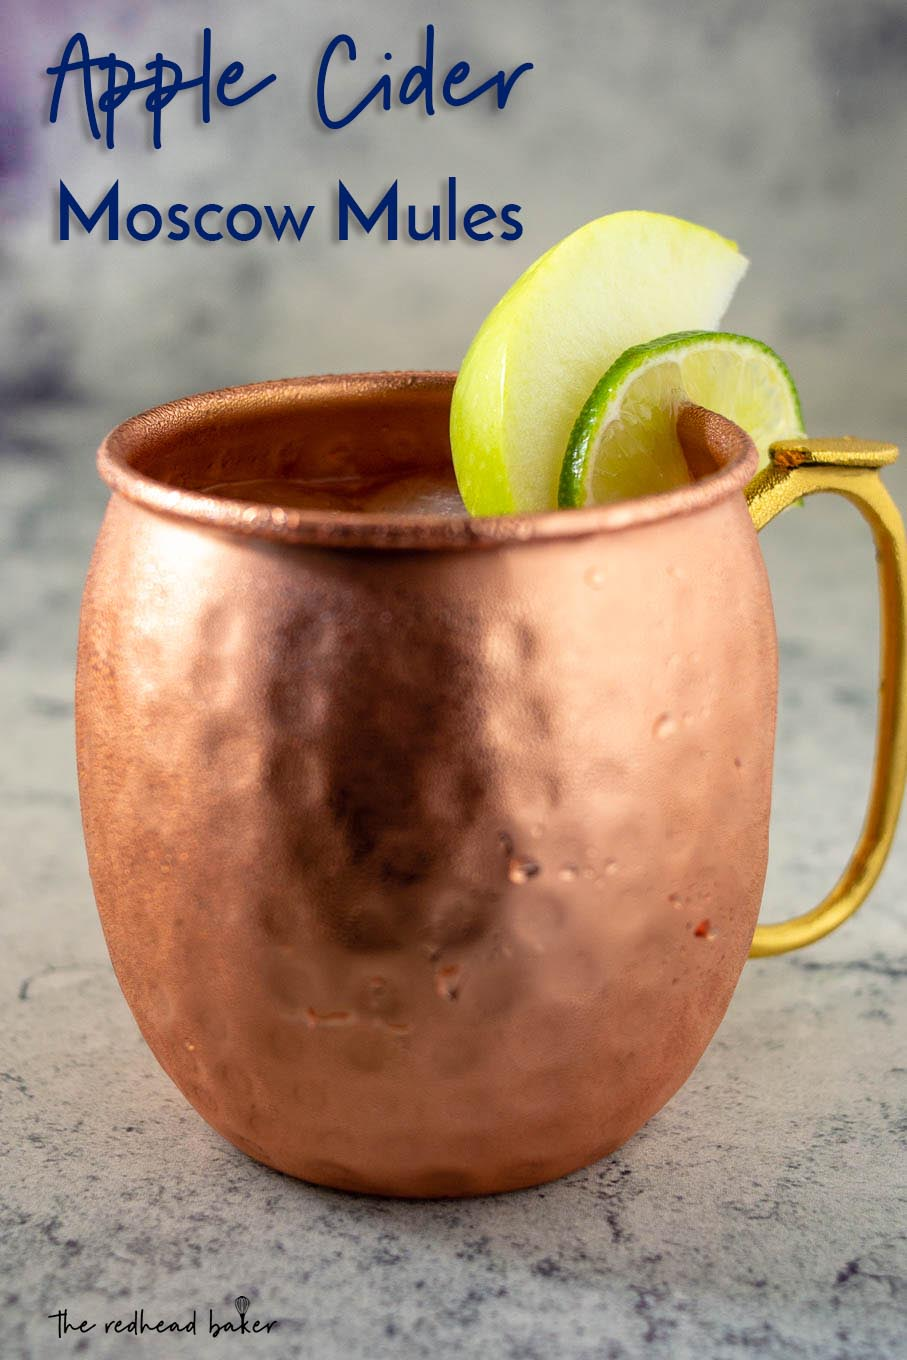 A close-up of a mug of Apple Cider Moscow Mule garnished with an apple wedge and a lime slice